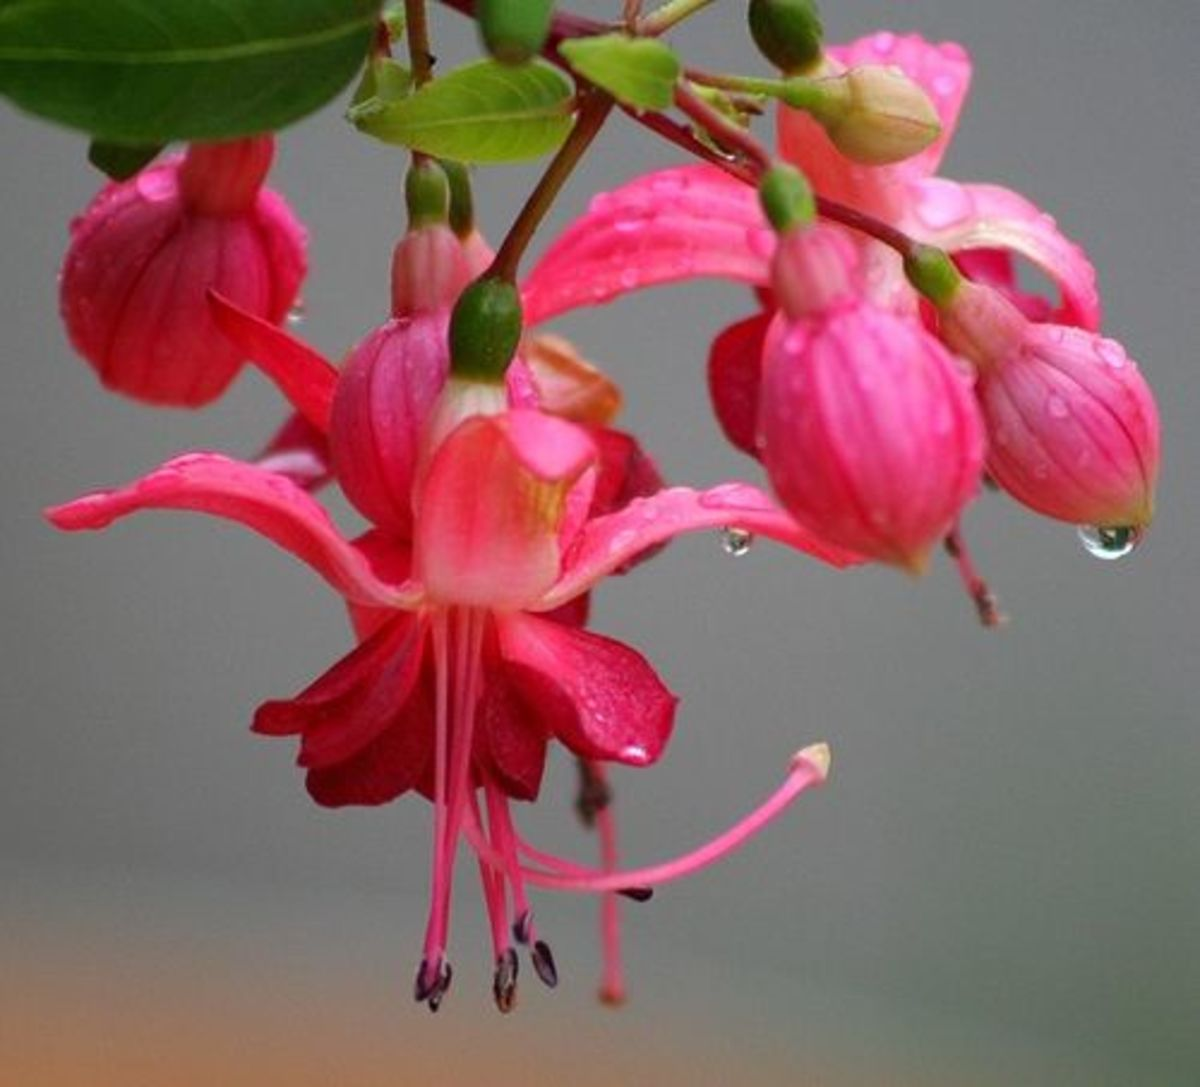 Fuchsia plant care guide dengarden hardy fuchsia plant fuchsia plant buying tips mightylinksfo